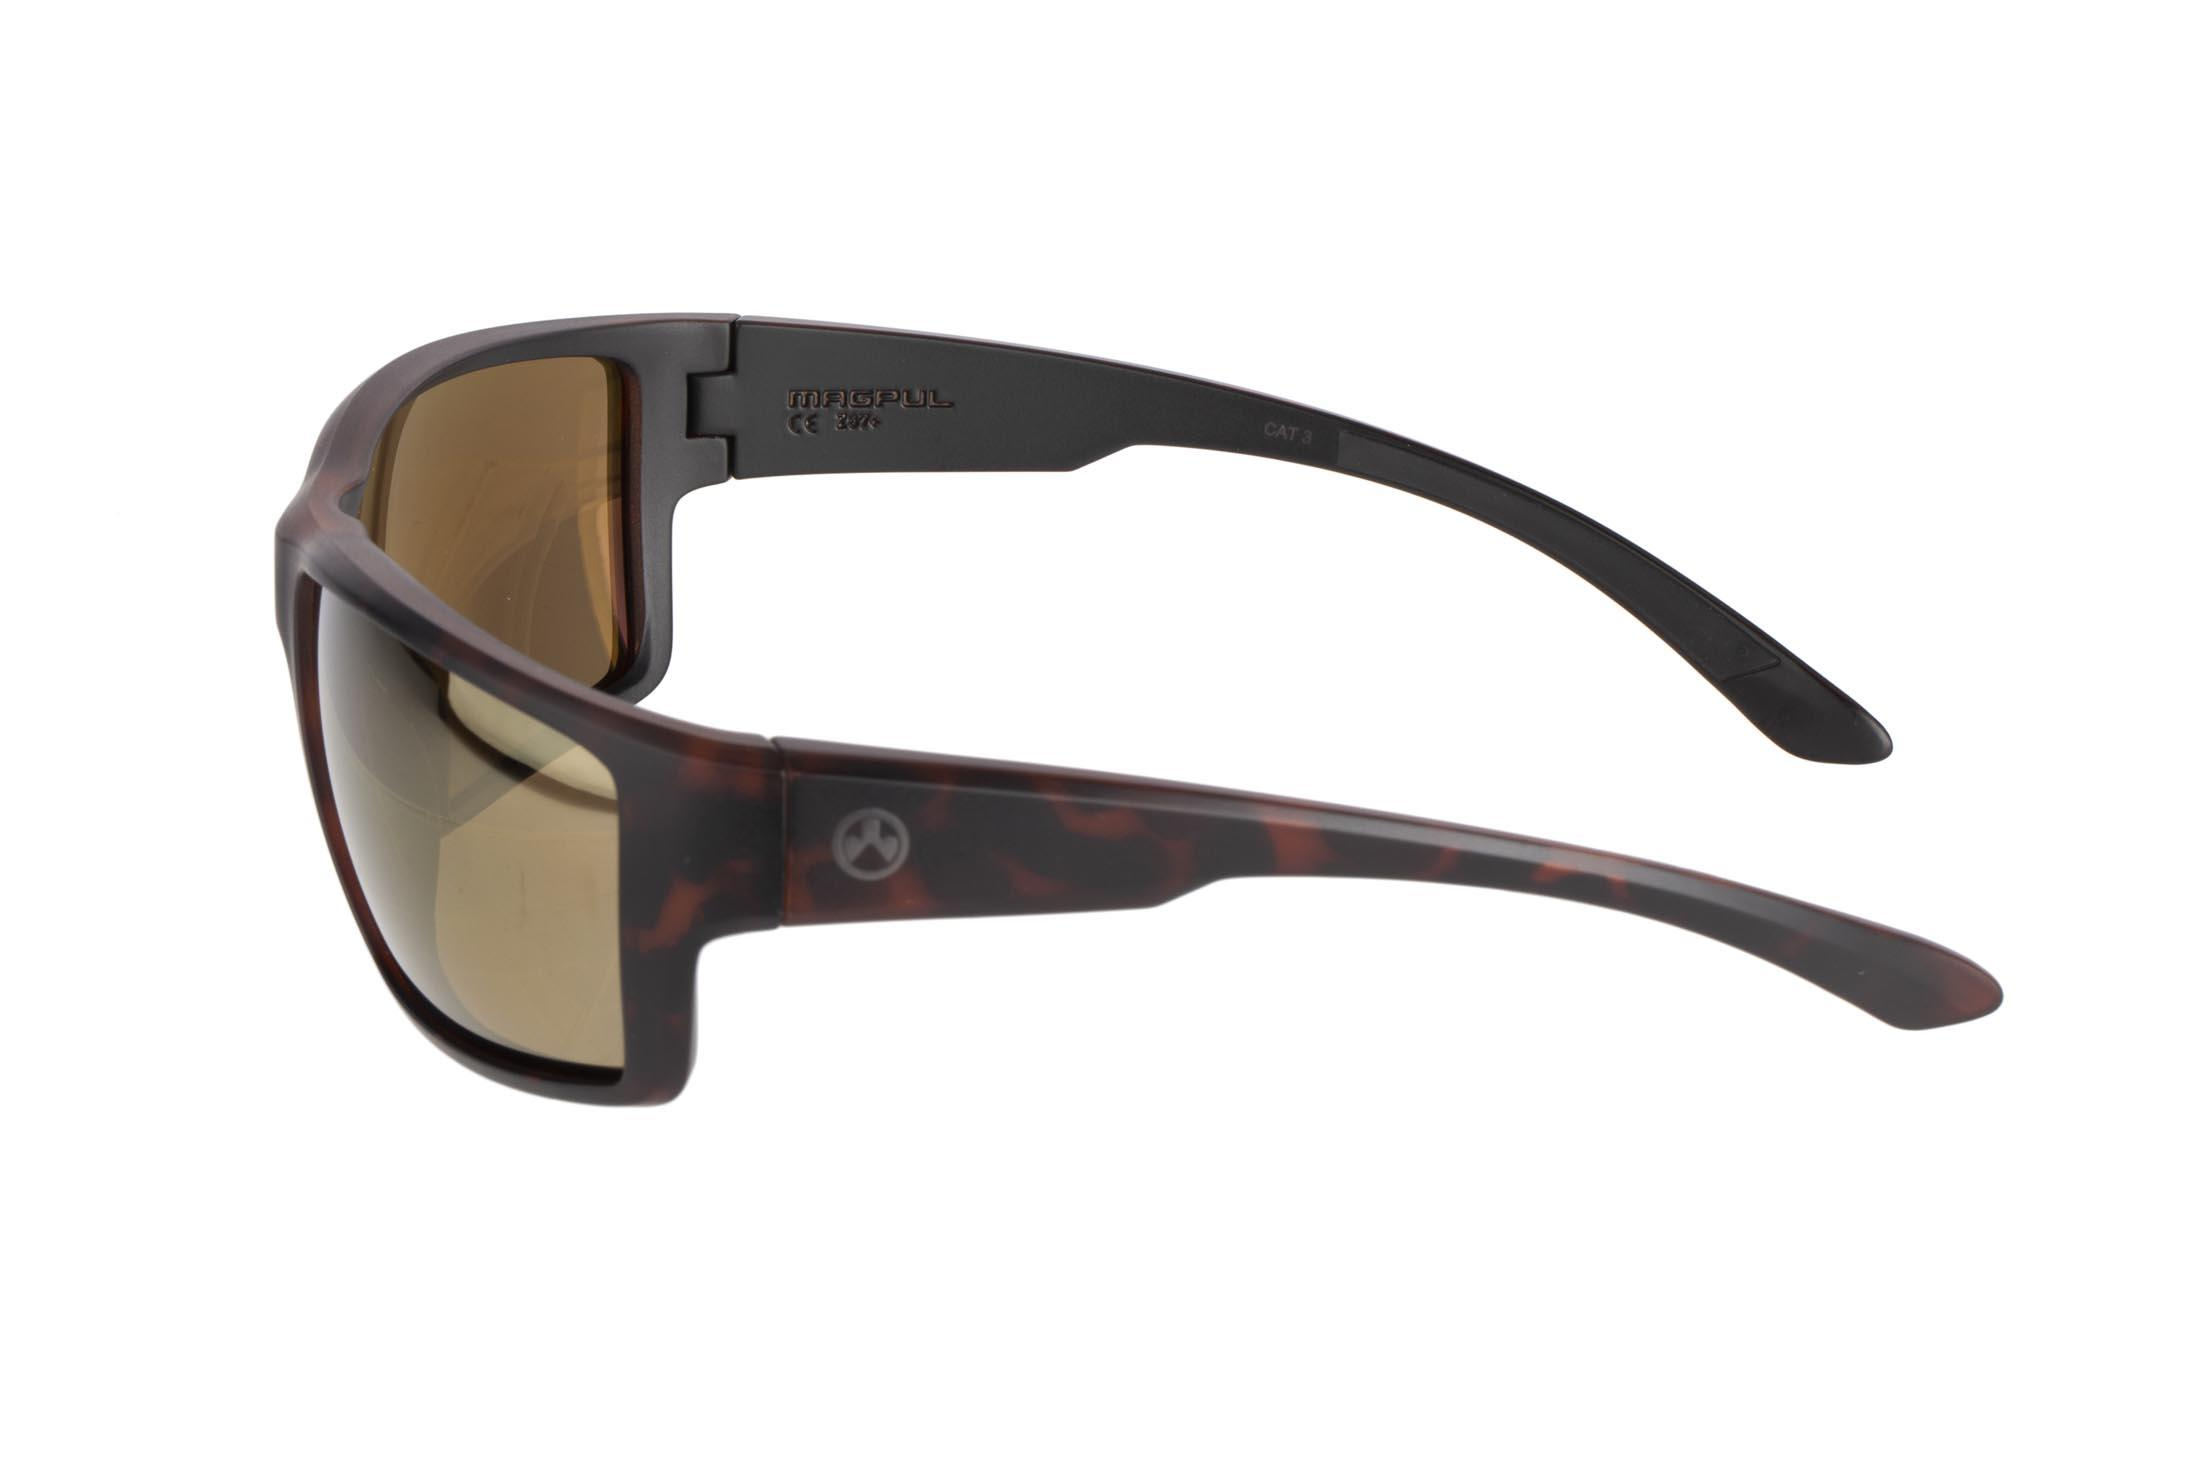 Magpul tortoise frame Terrain polarized sunglasses with bronze/gold lenses are stylish, yet Z87+ and MIL-PRF 32432 ballistic rated